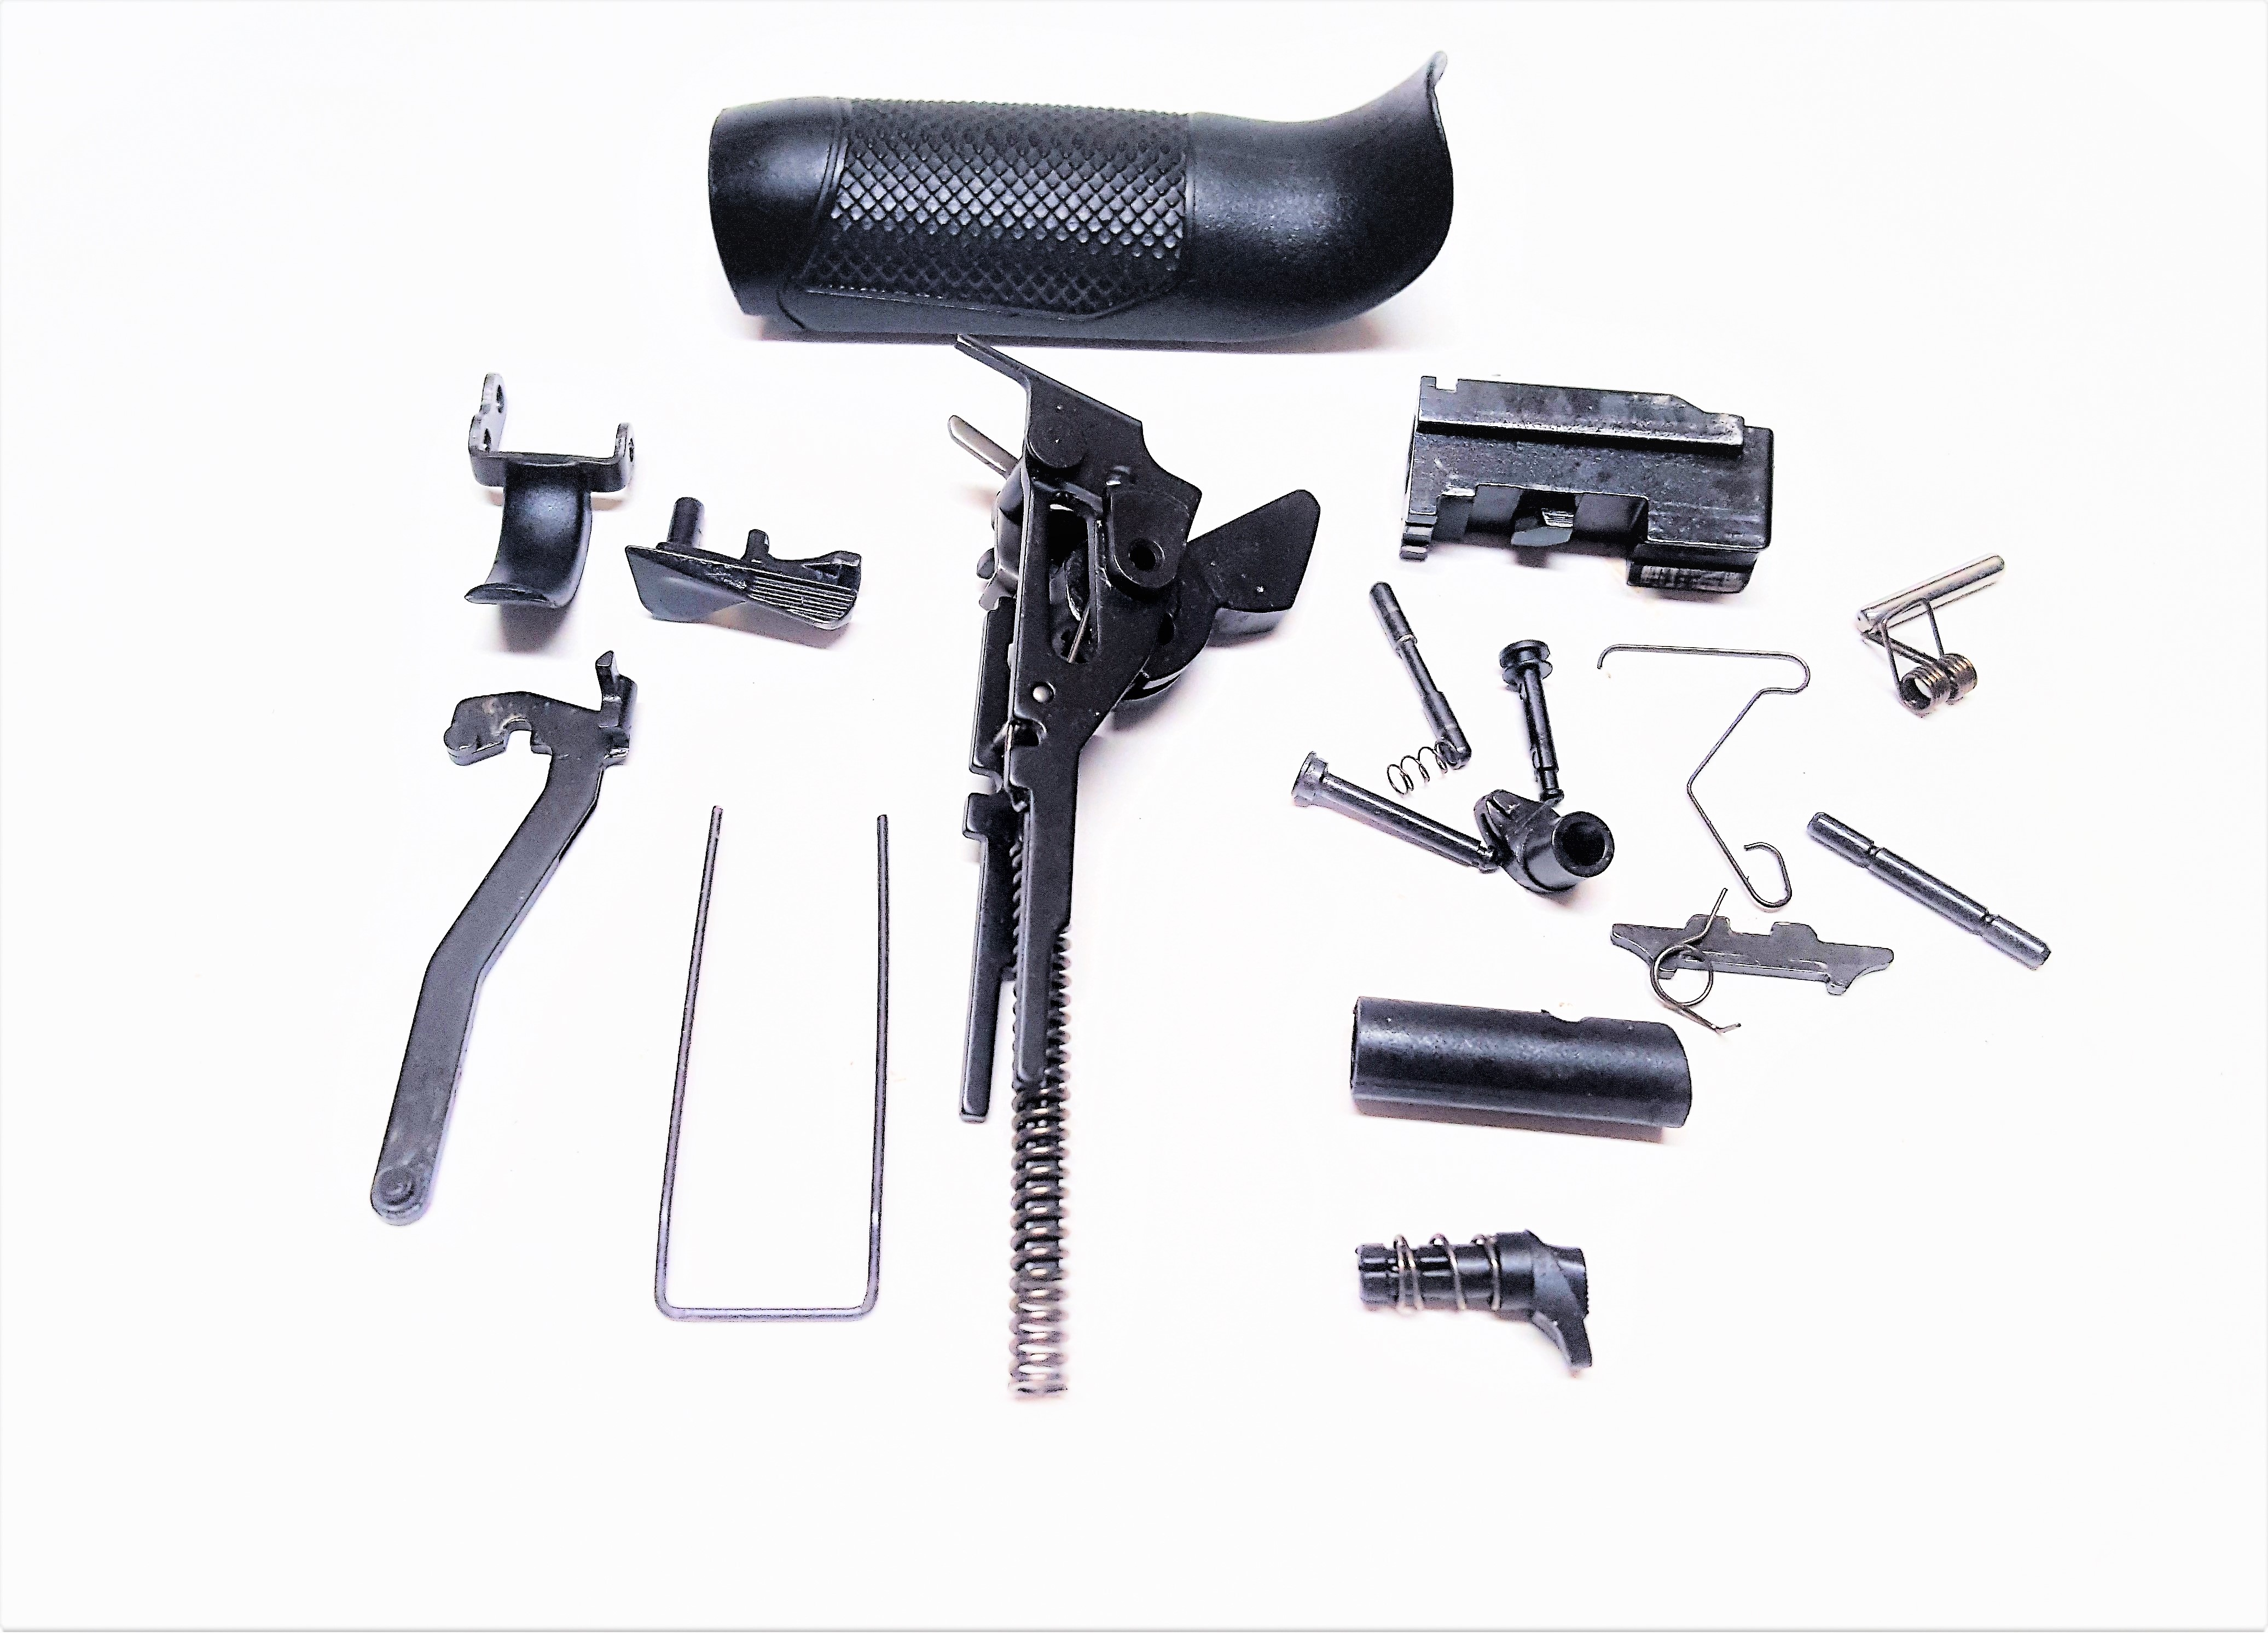 Used Beretta PX4 Storm 9MM Trigger Small Parts Kit-Very Good  Condition-Available Online-No FFL Required